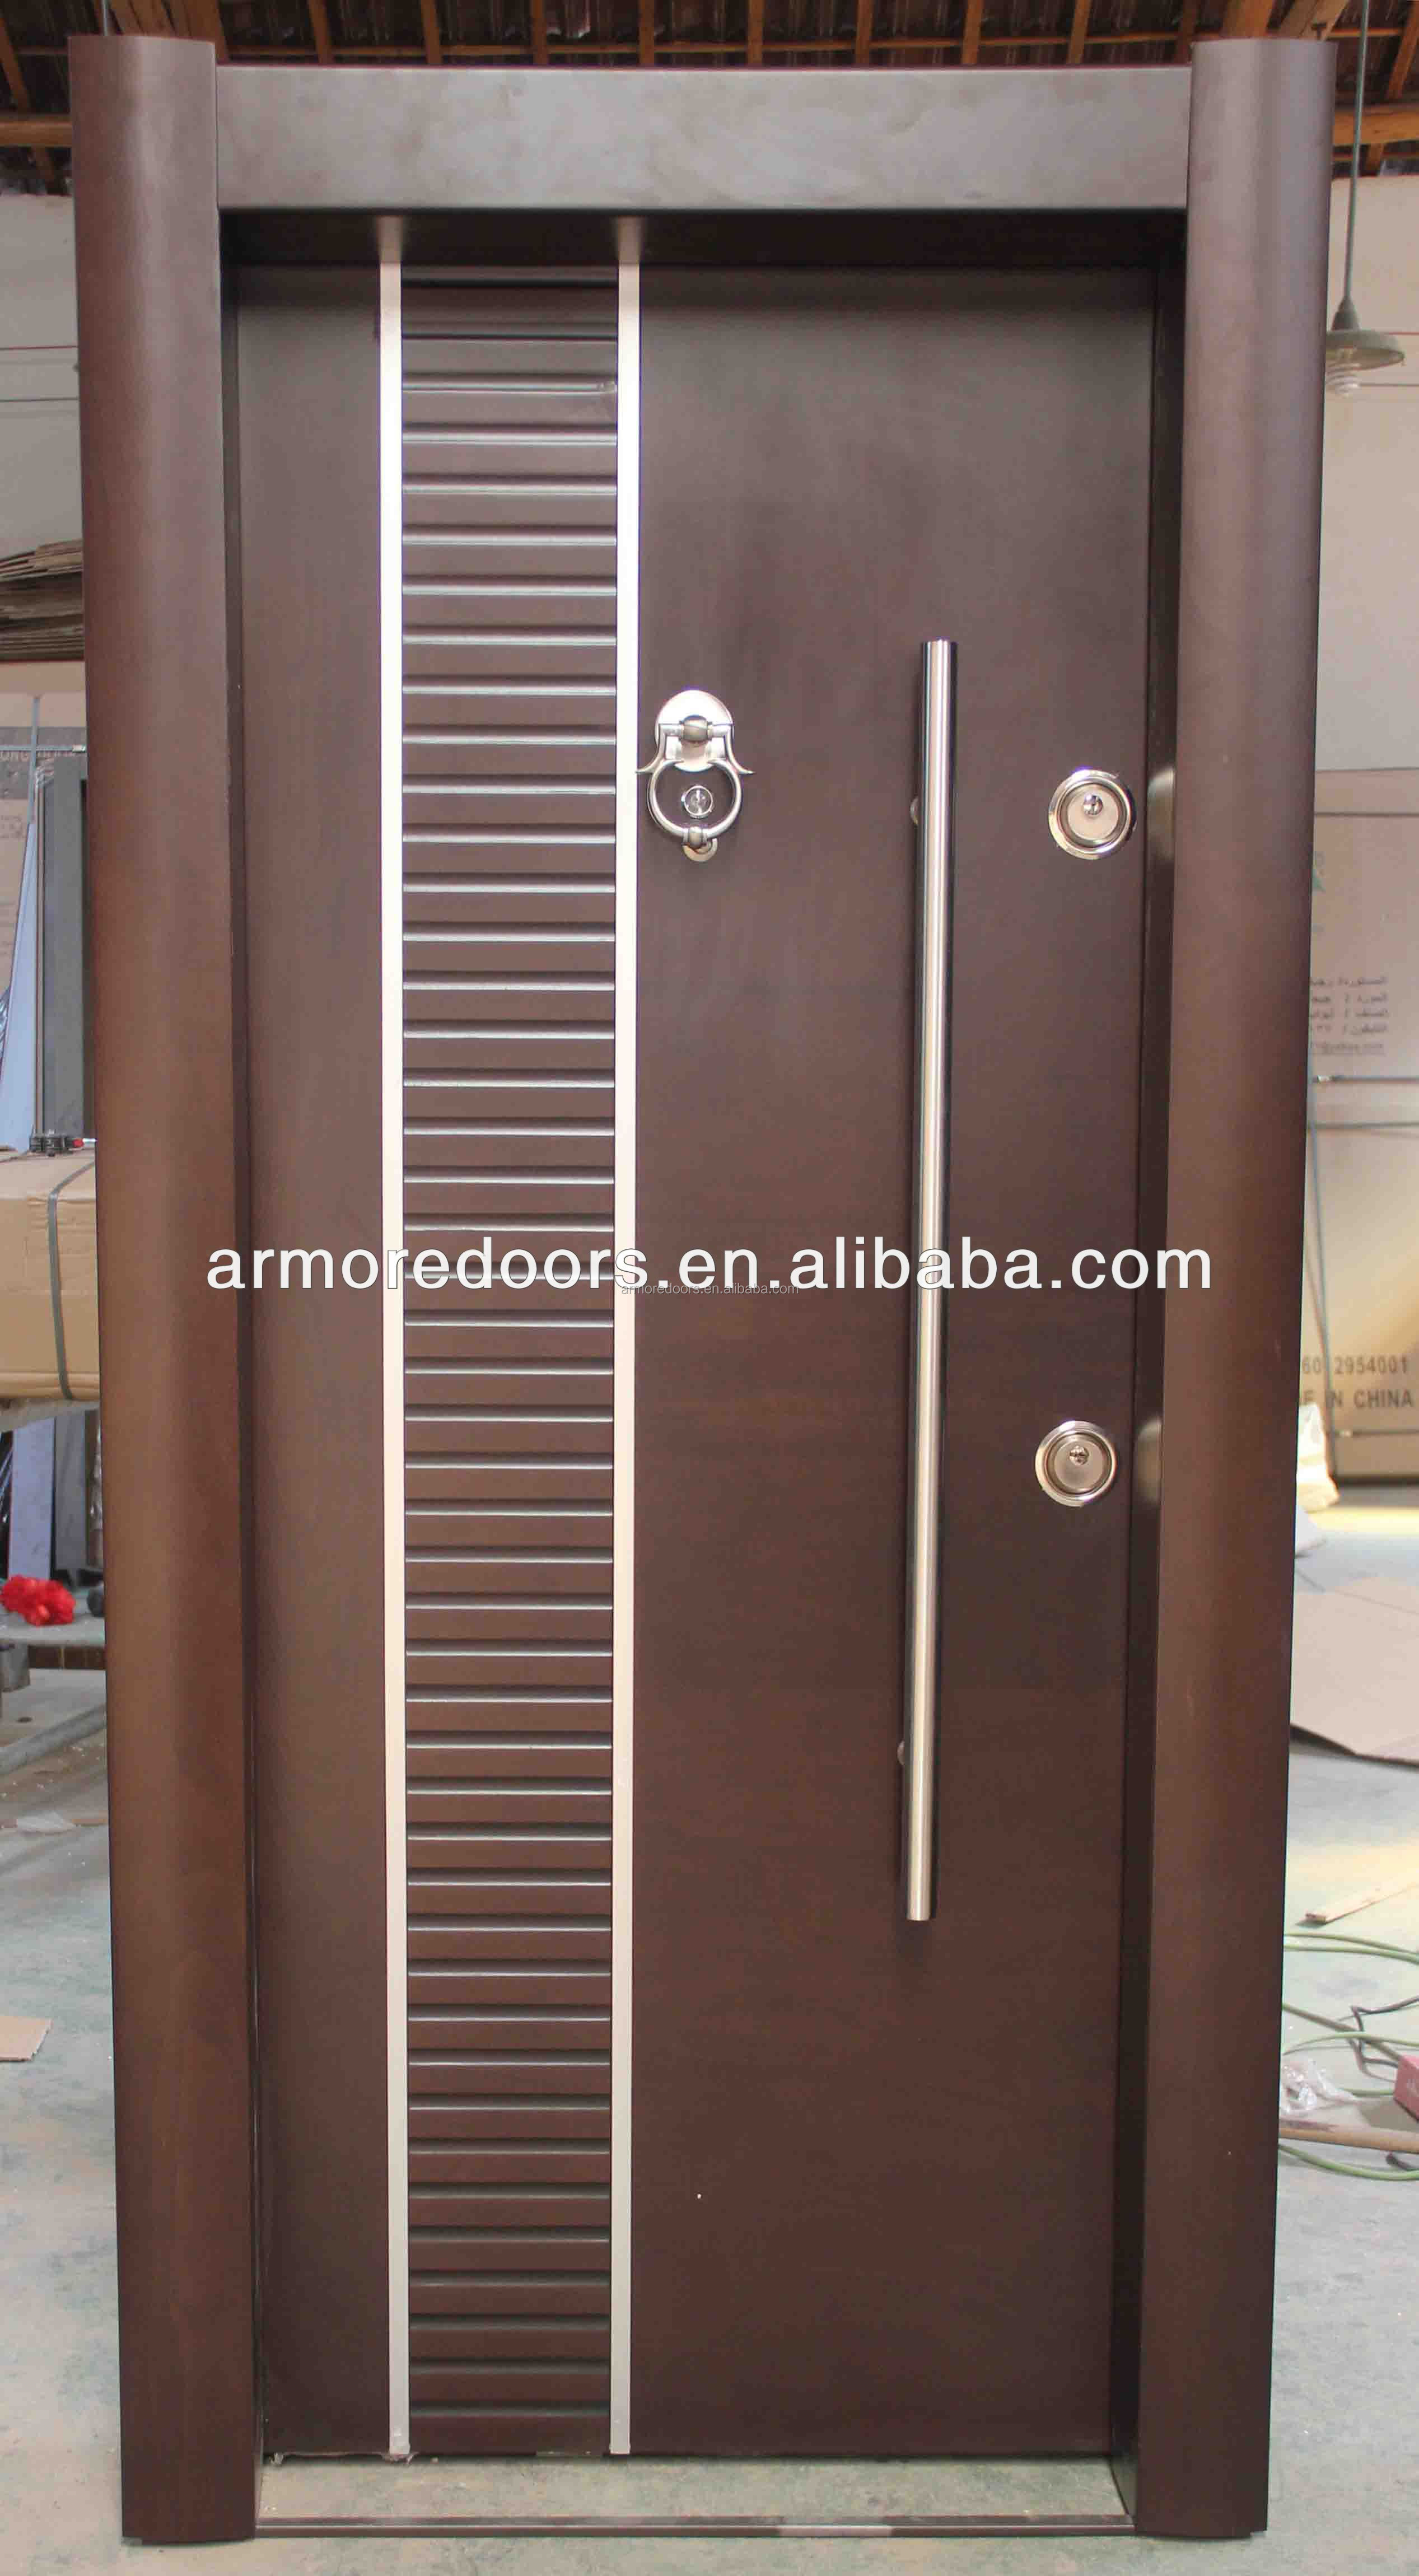 Latest Wooden Door Designs 2017 Armored Door And Interior Door Swing Metal Armored